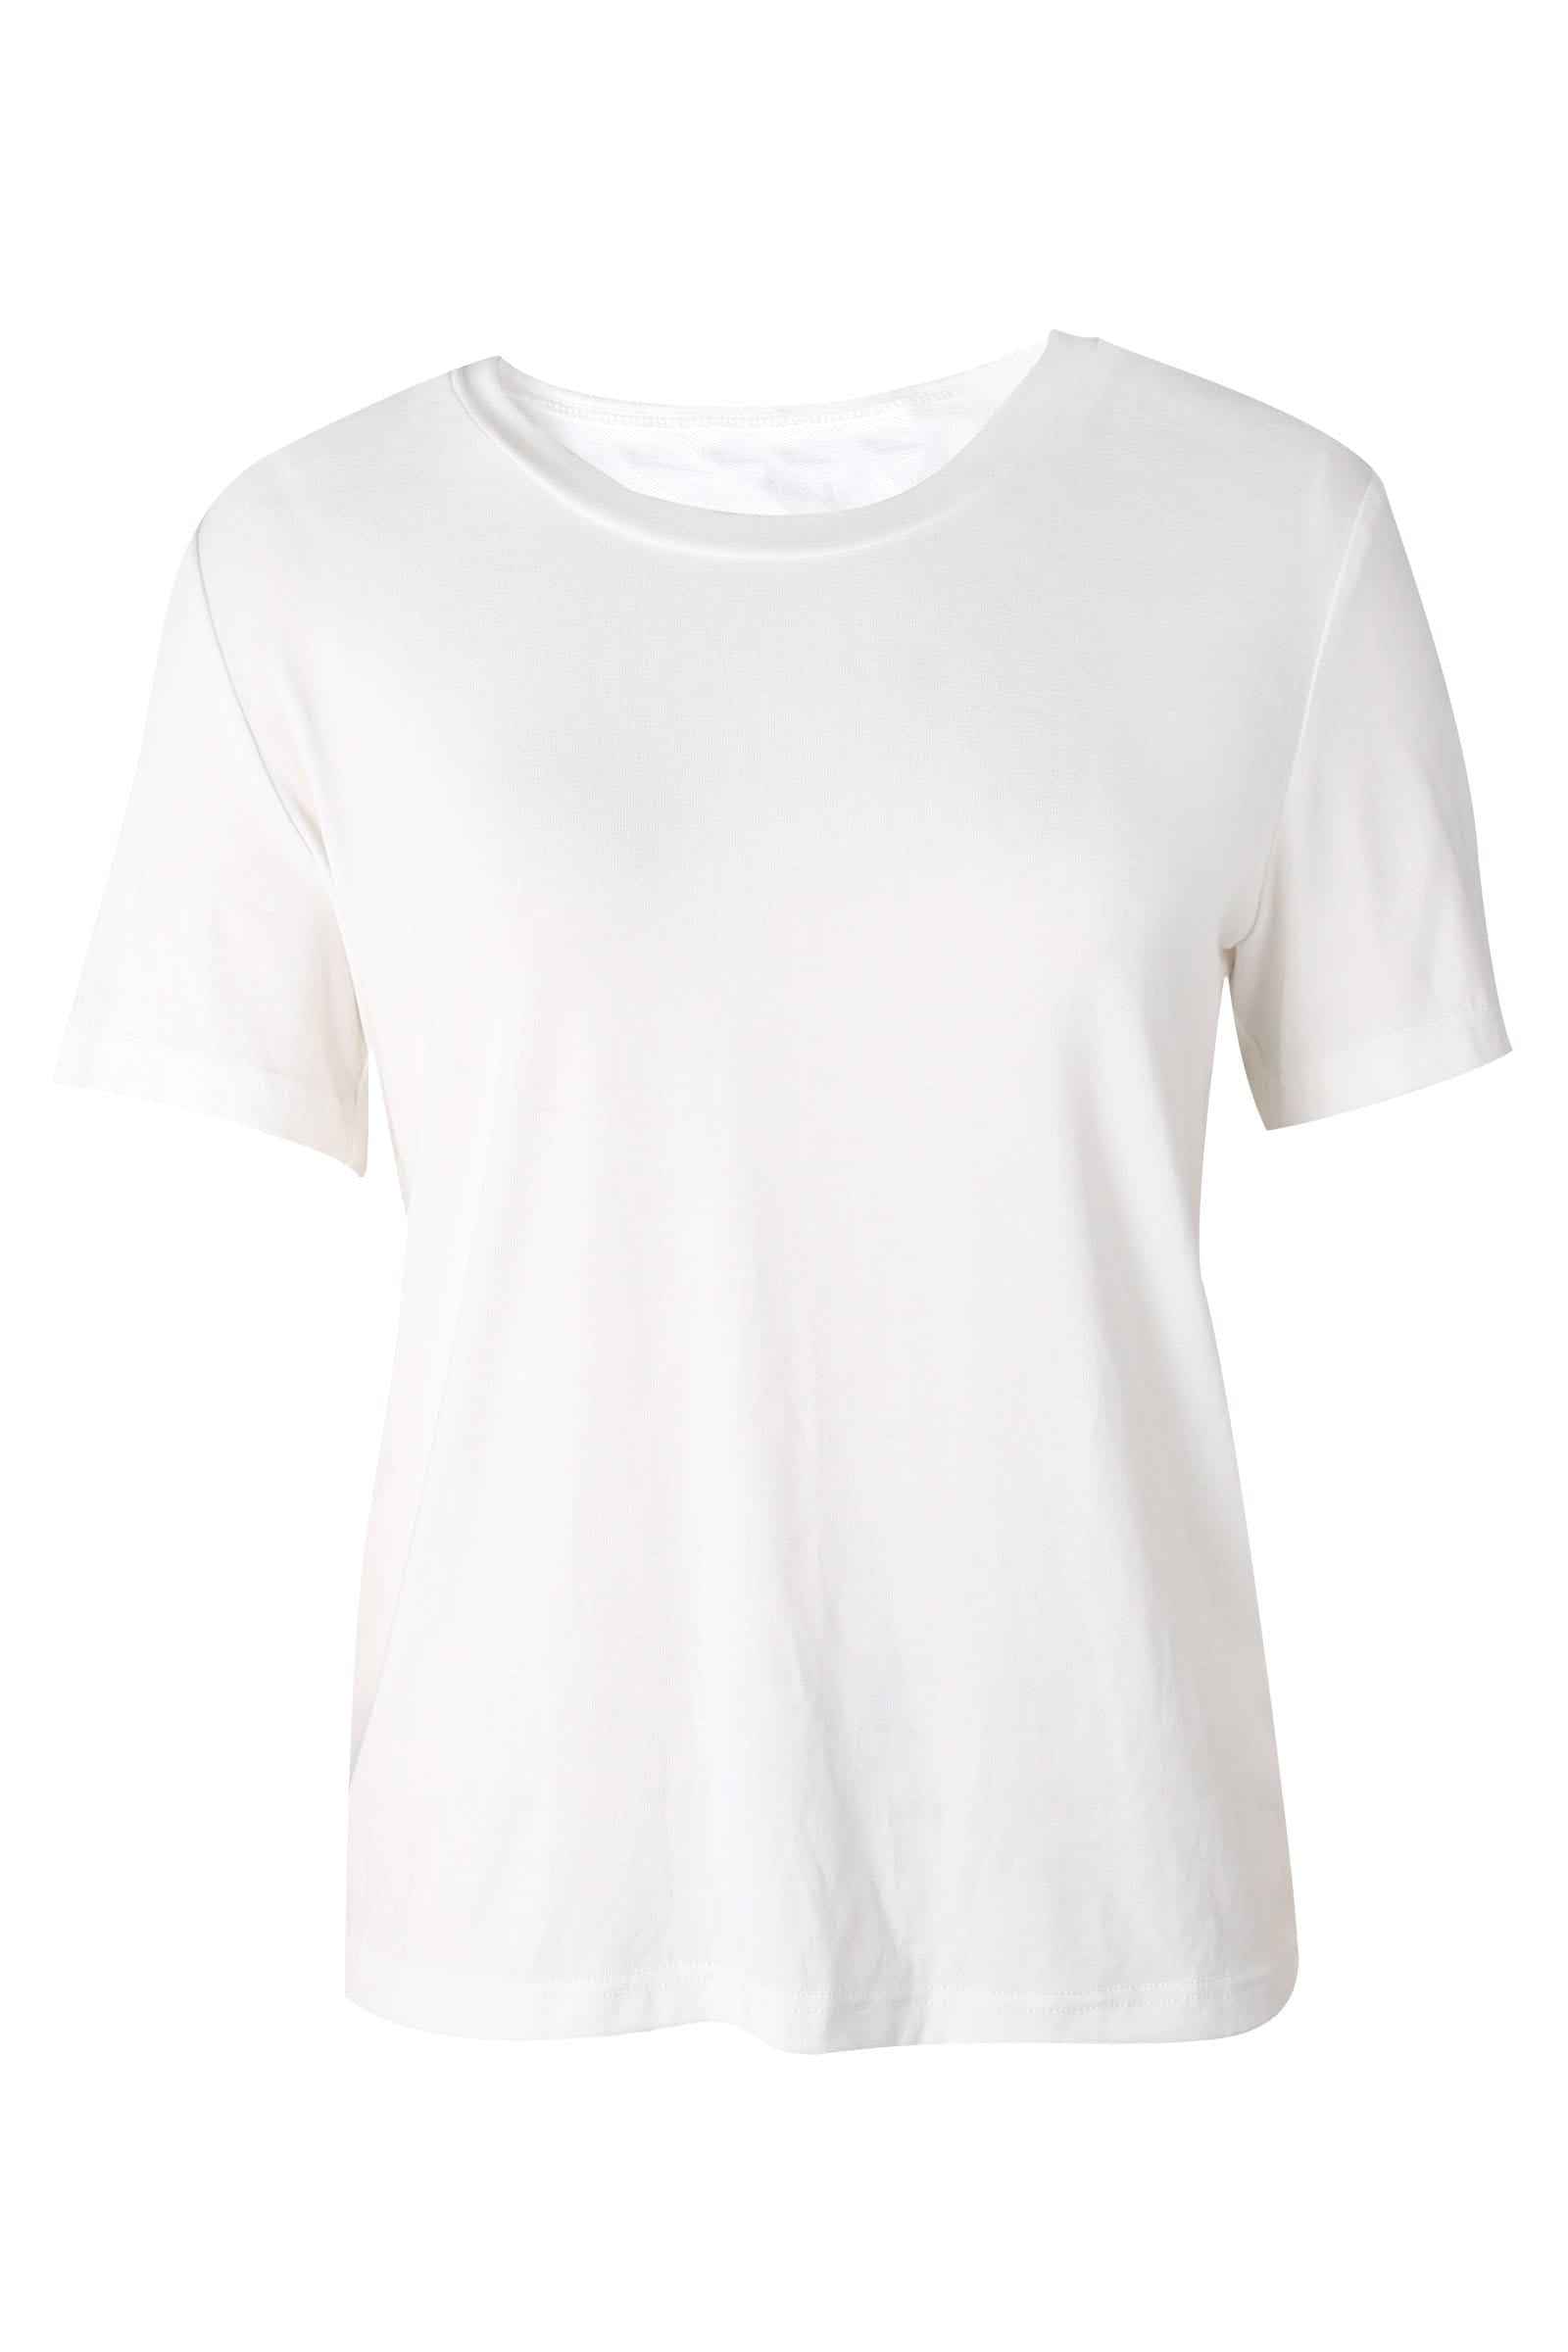 Essential White Round Neck Tee